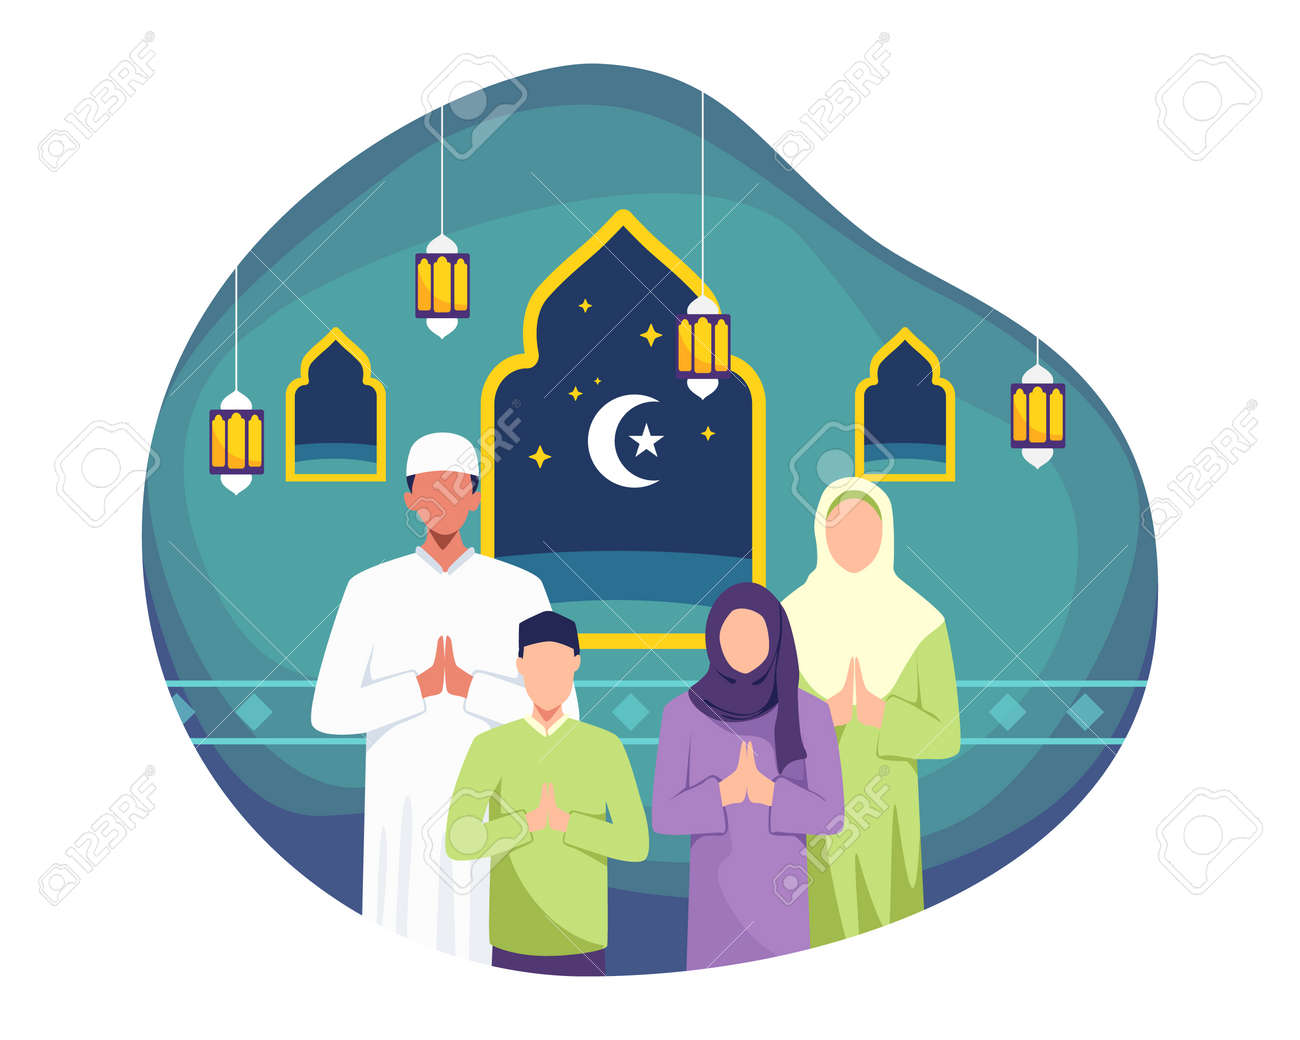 Happy family greeting and celebrating Eid mubarak. Man and his wife doing greeting, Muslim people wishing and greeting Eid al-fitr. Vector in a flat style - 168304454